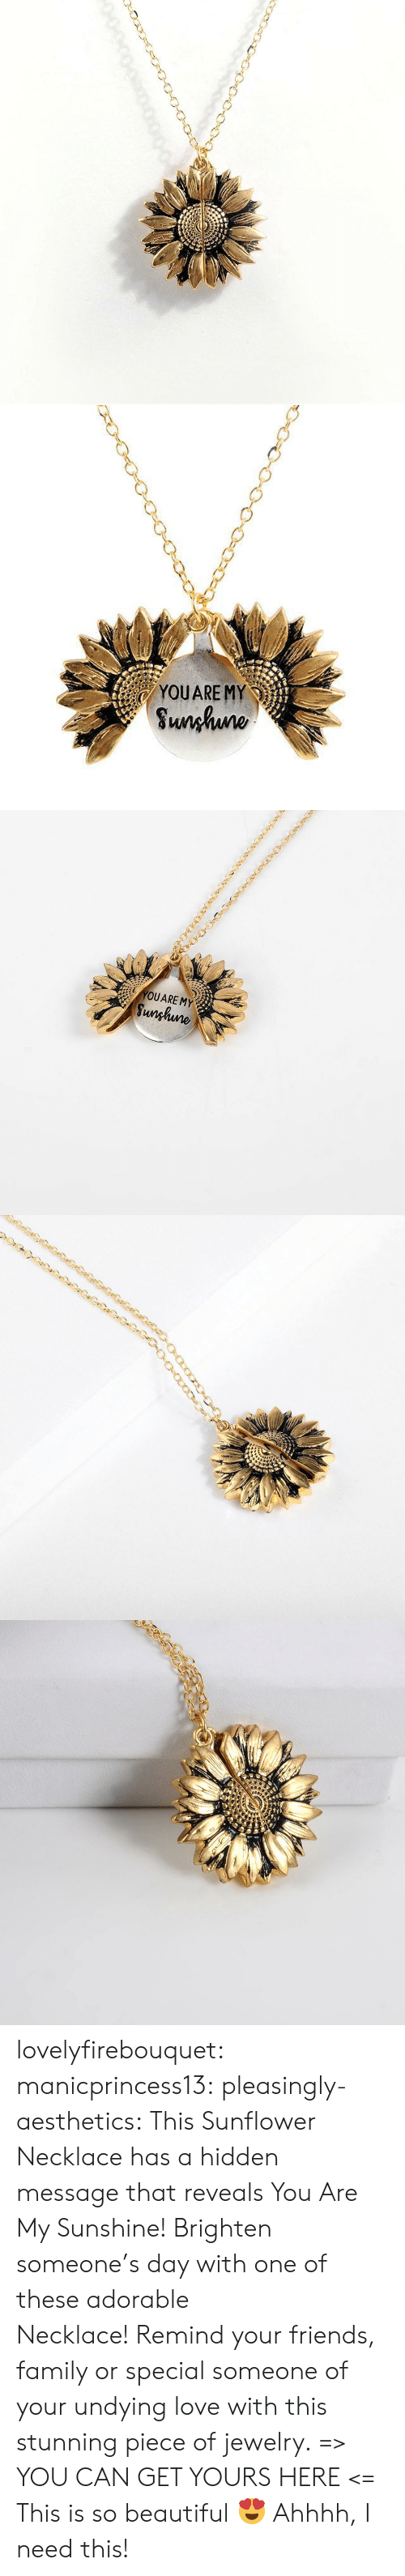 I Need This: YOUARE MY  Sunhuno   YOUARE MY  Sunghune lovelyfirebouquet:  manicprincess13: pleasingly-aesthetics:  This Sunflower Necklace has a hidden message that reveals You Are My Sunshine! Brighten someone's day with one of these adorable Necklace! Remind your friends, family or special someone of your undying love with this stunning piece of jewelry. => YOU CAN GET YOURS HERE <=   This is so beautiful ?   Ahhhh, I need this!